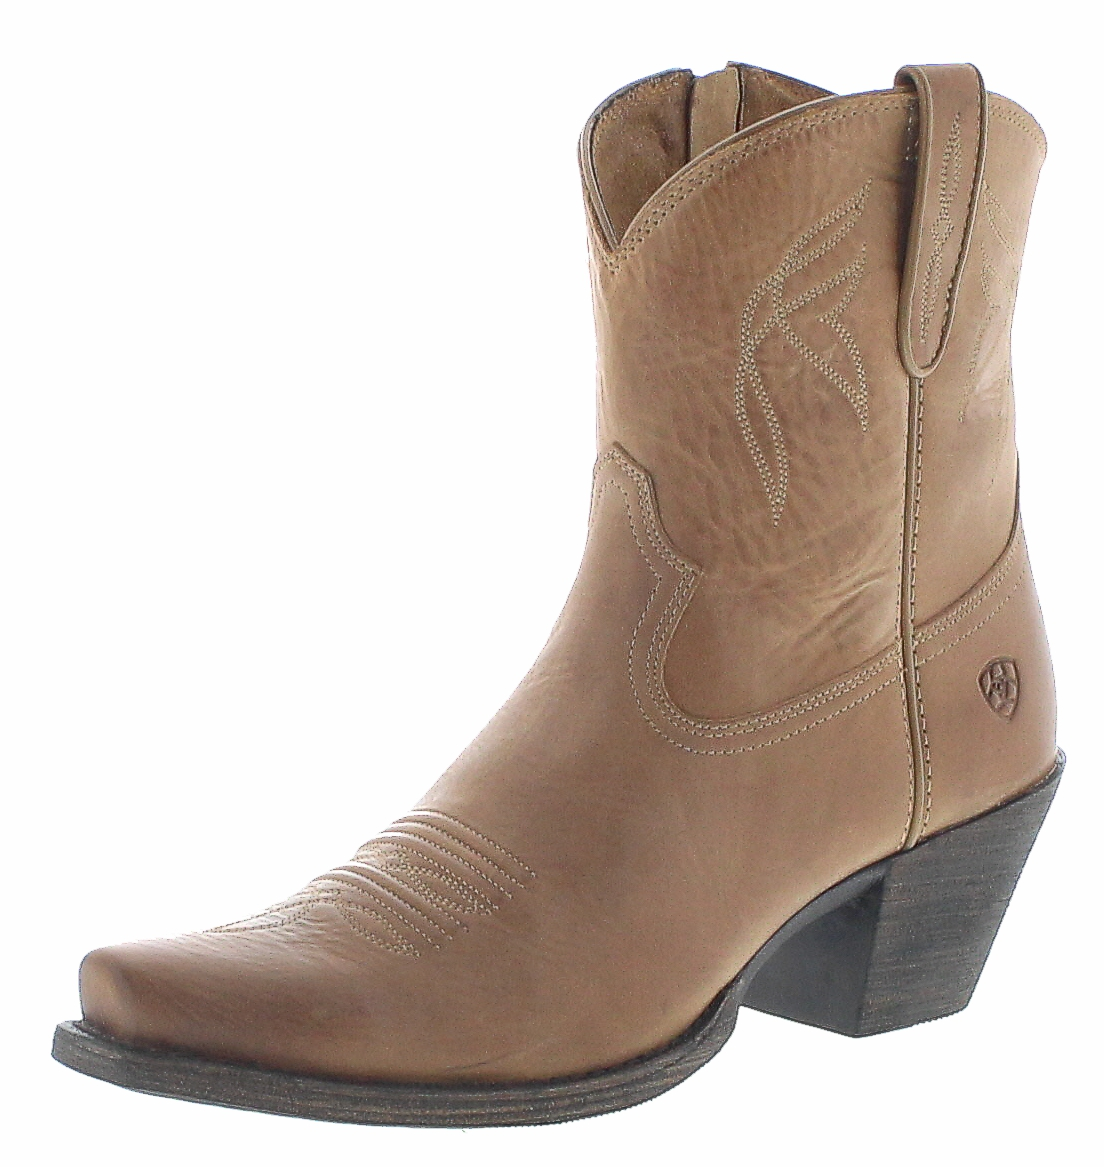 Ariat 27230 LOVELY Luggage Ankle boots women - brown